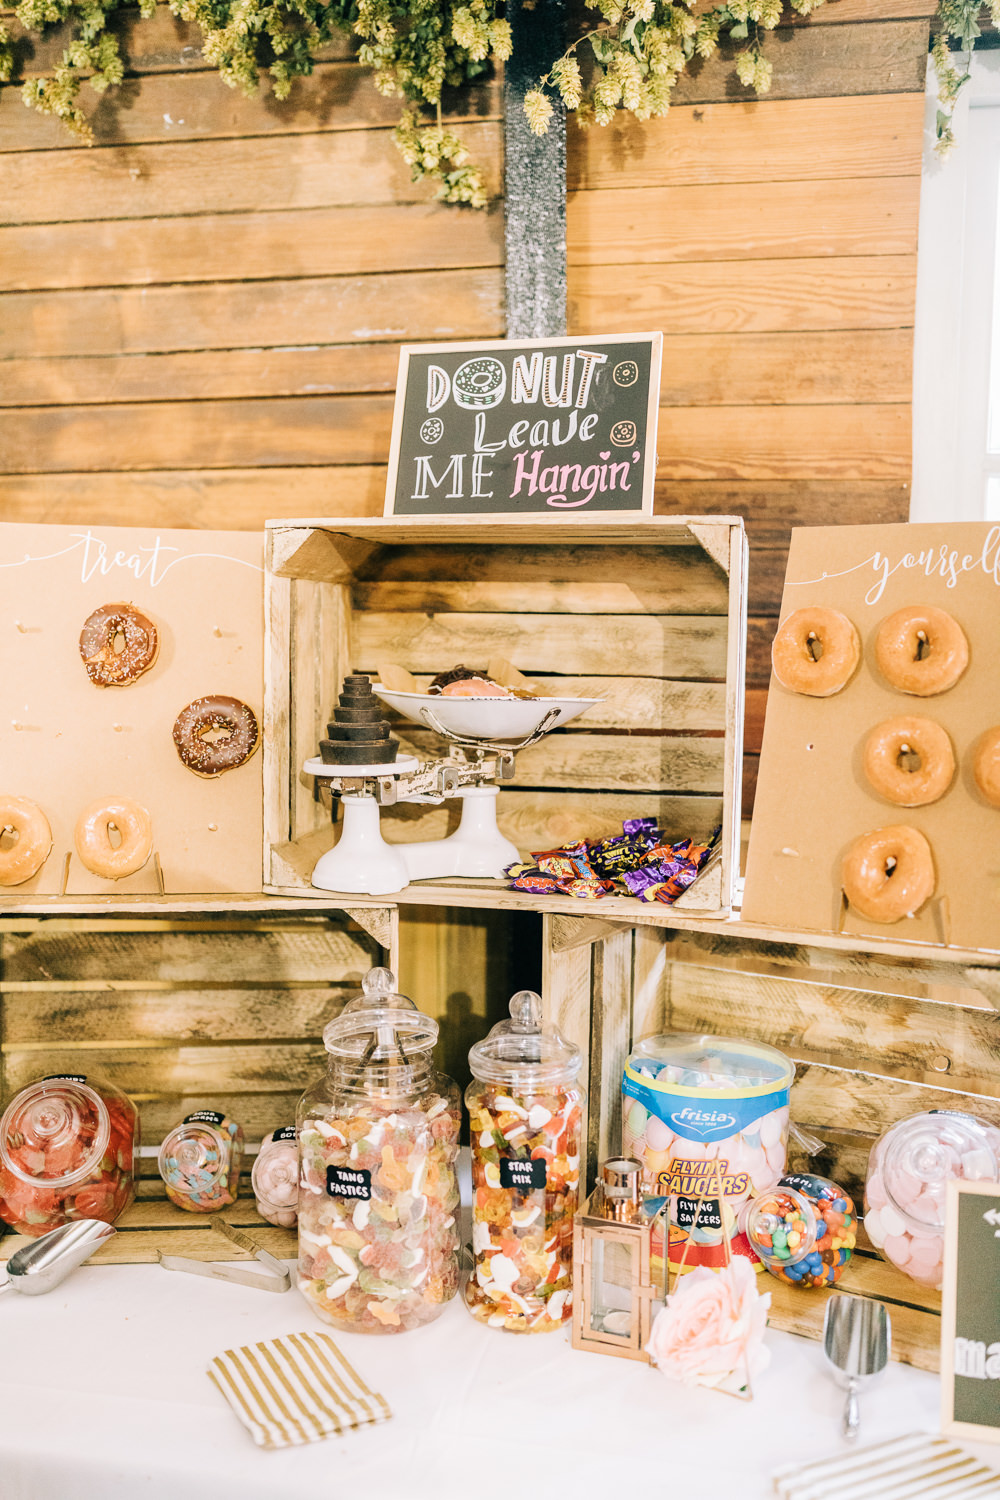 Sweets Sweetie Bar Stand Station Donuts Doughnuts Gate Street Barn Wedding Camilla J Hards